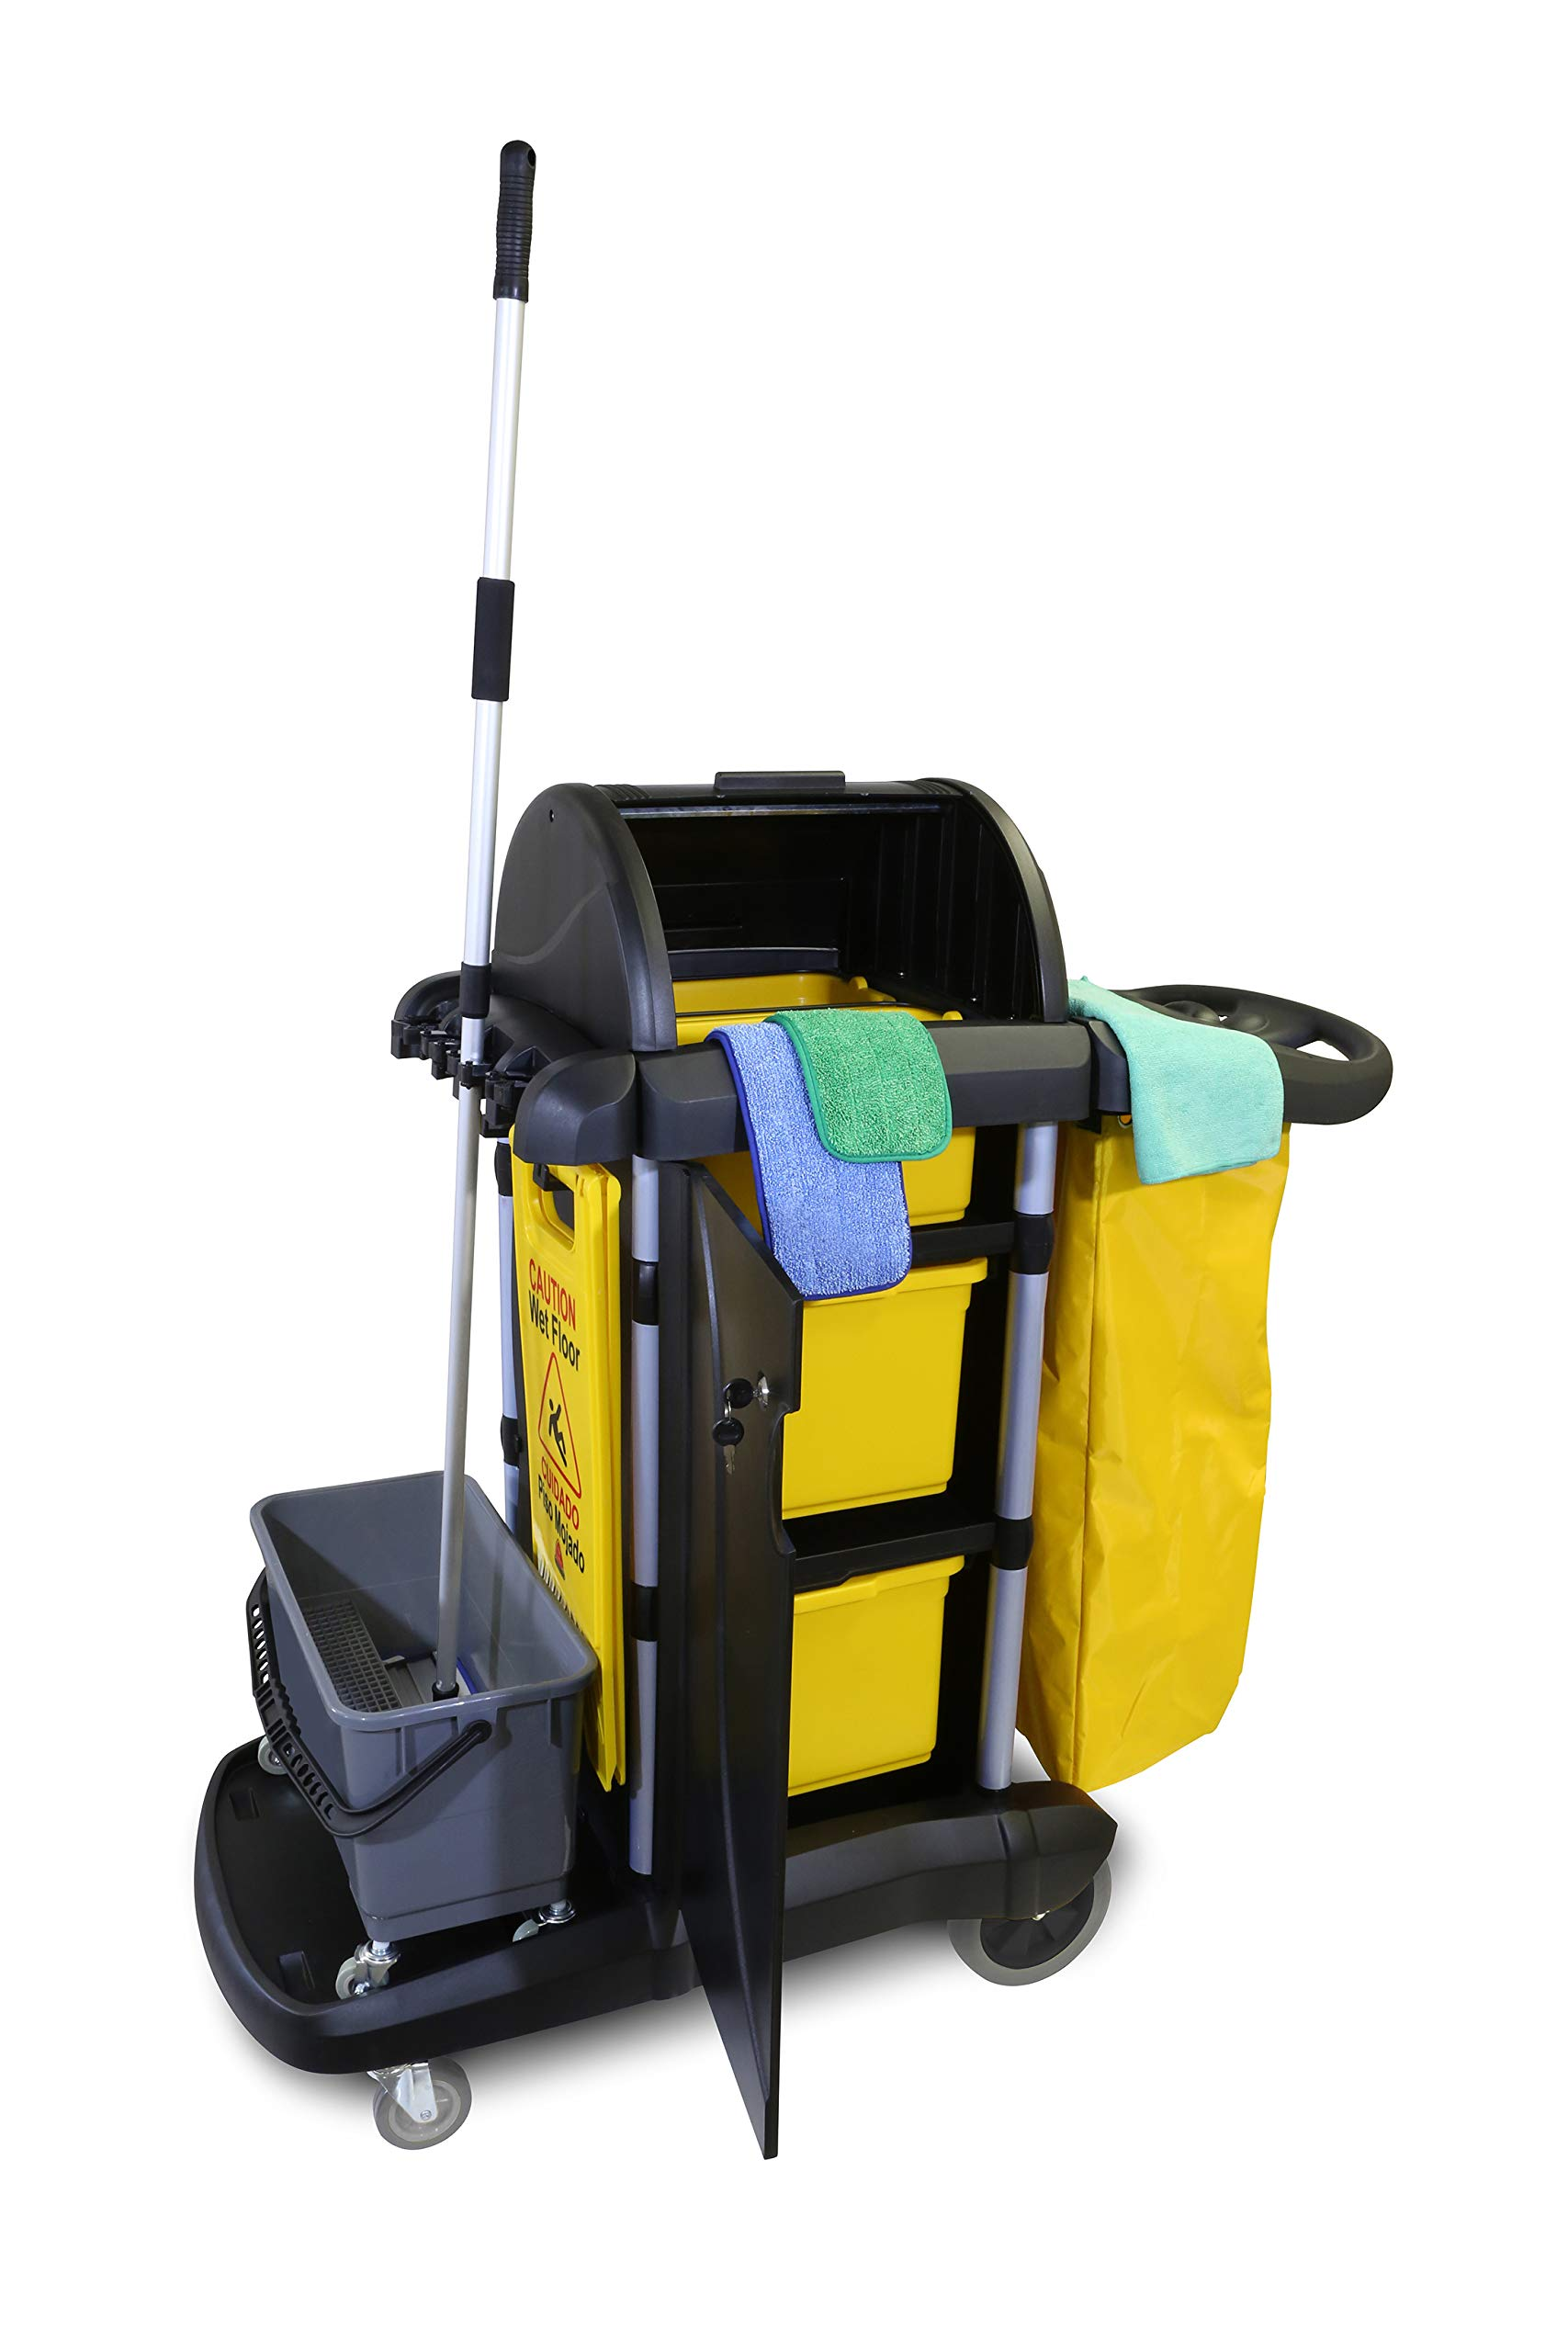 O'Cedar Commercial 96997 MaxiPlus Deluxe Janitor Cart (Pack of 1) by O-Cedar Commercial (Image #2)